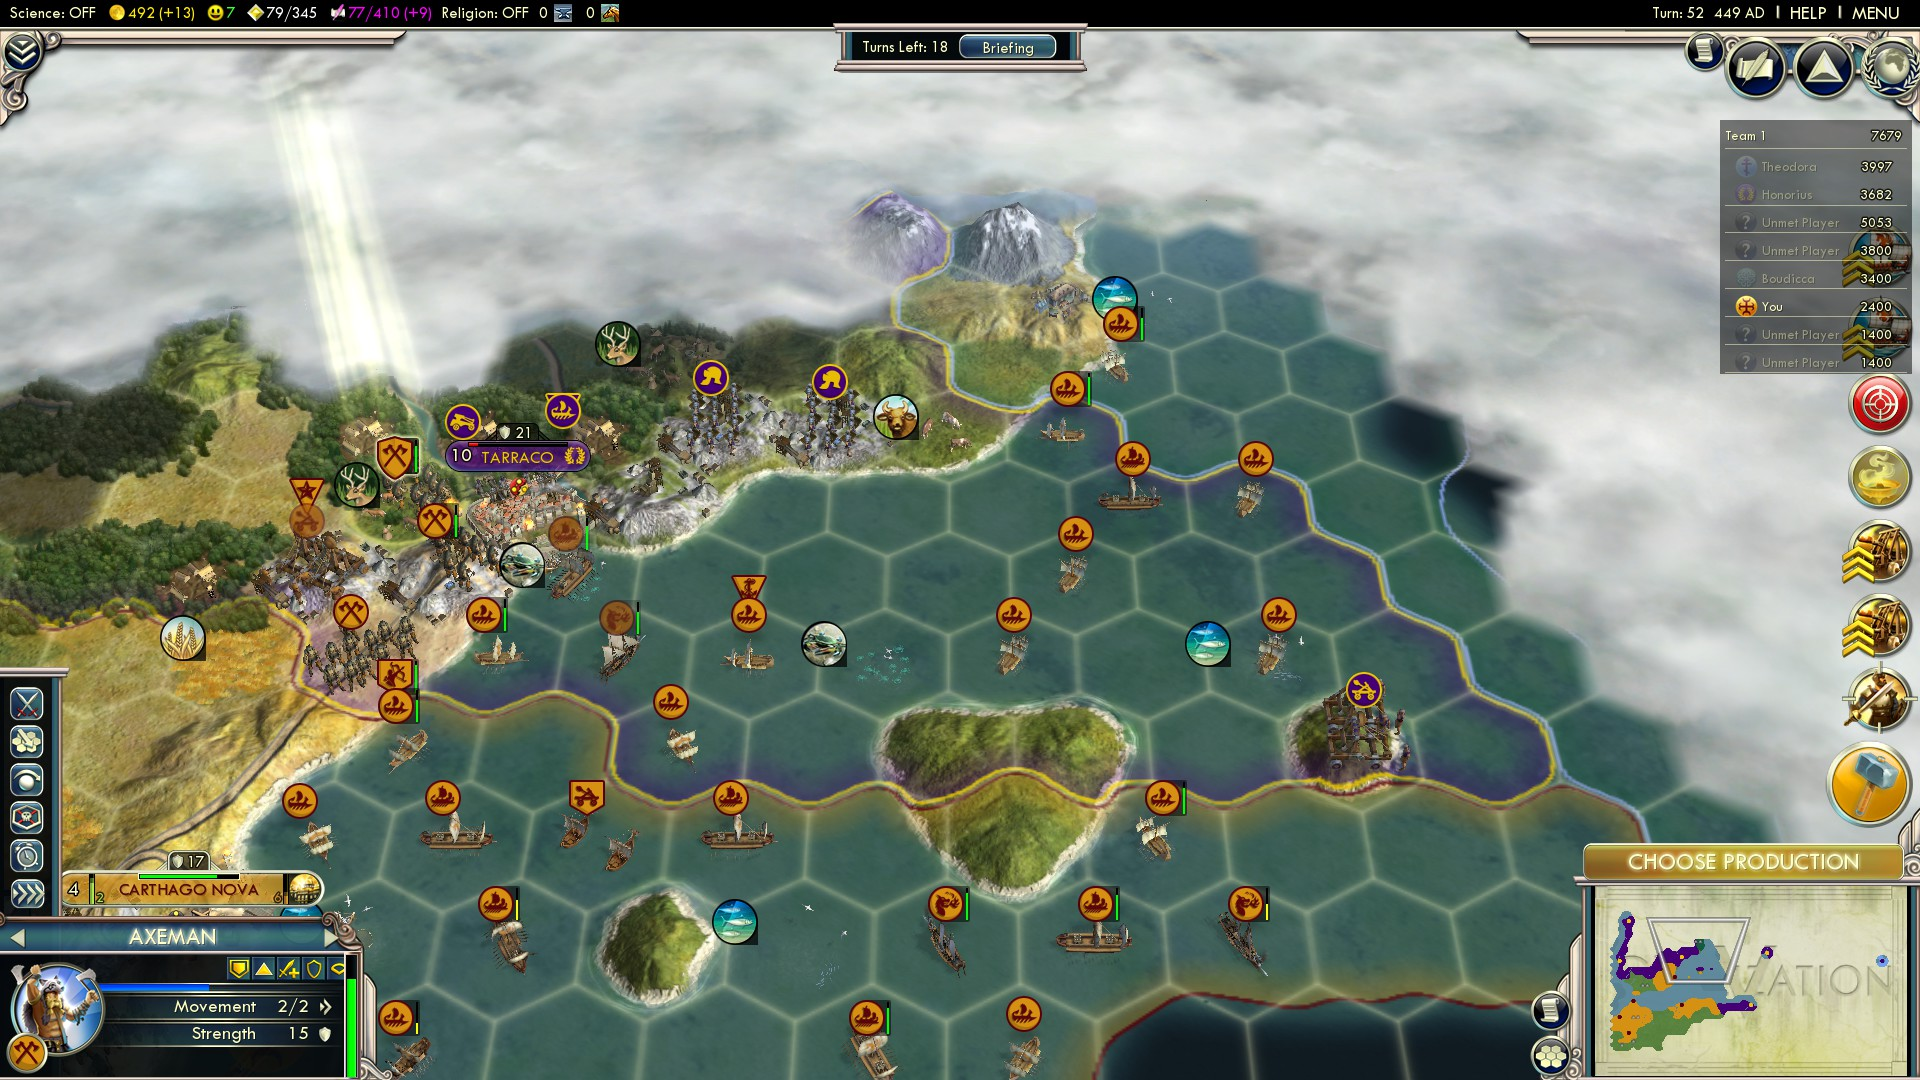 Civilization 5 Fall of Rome Vandals Deity - Tarraco starts the Conquest